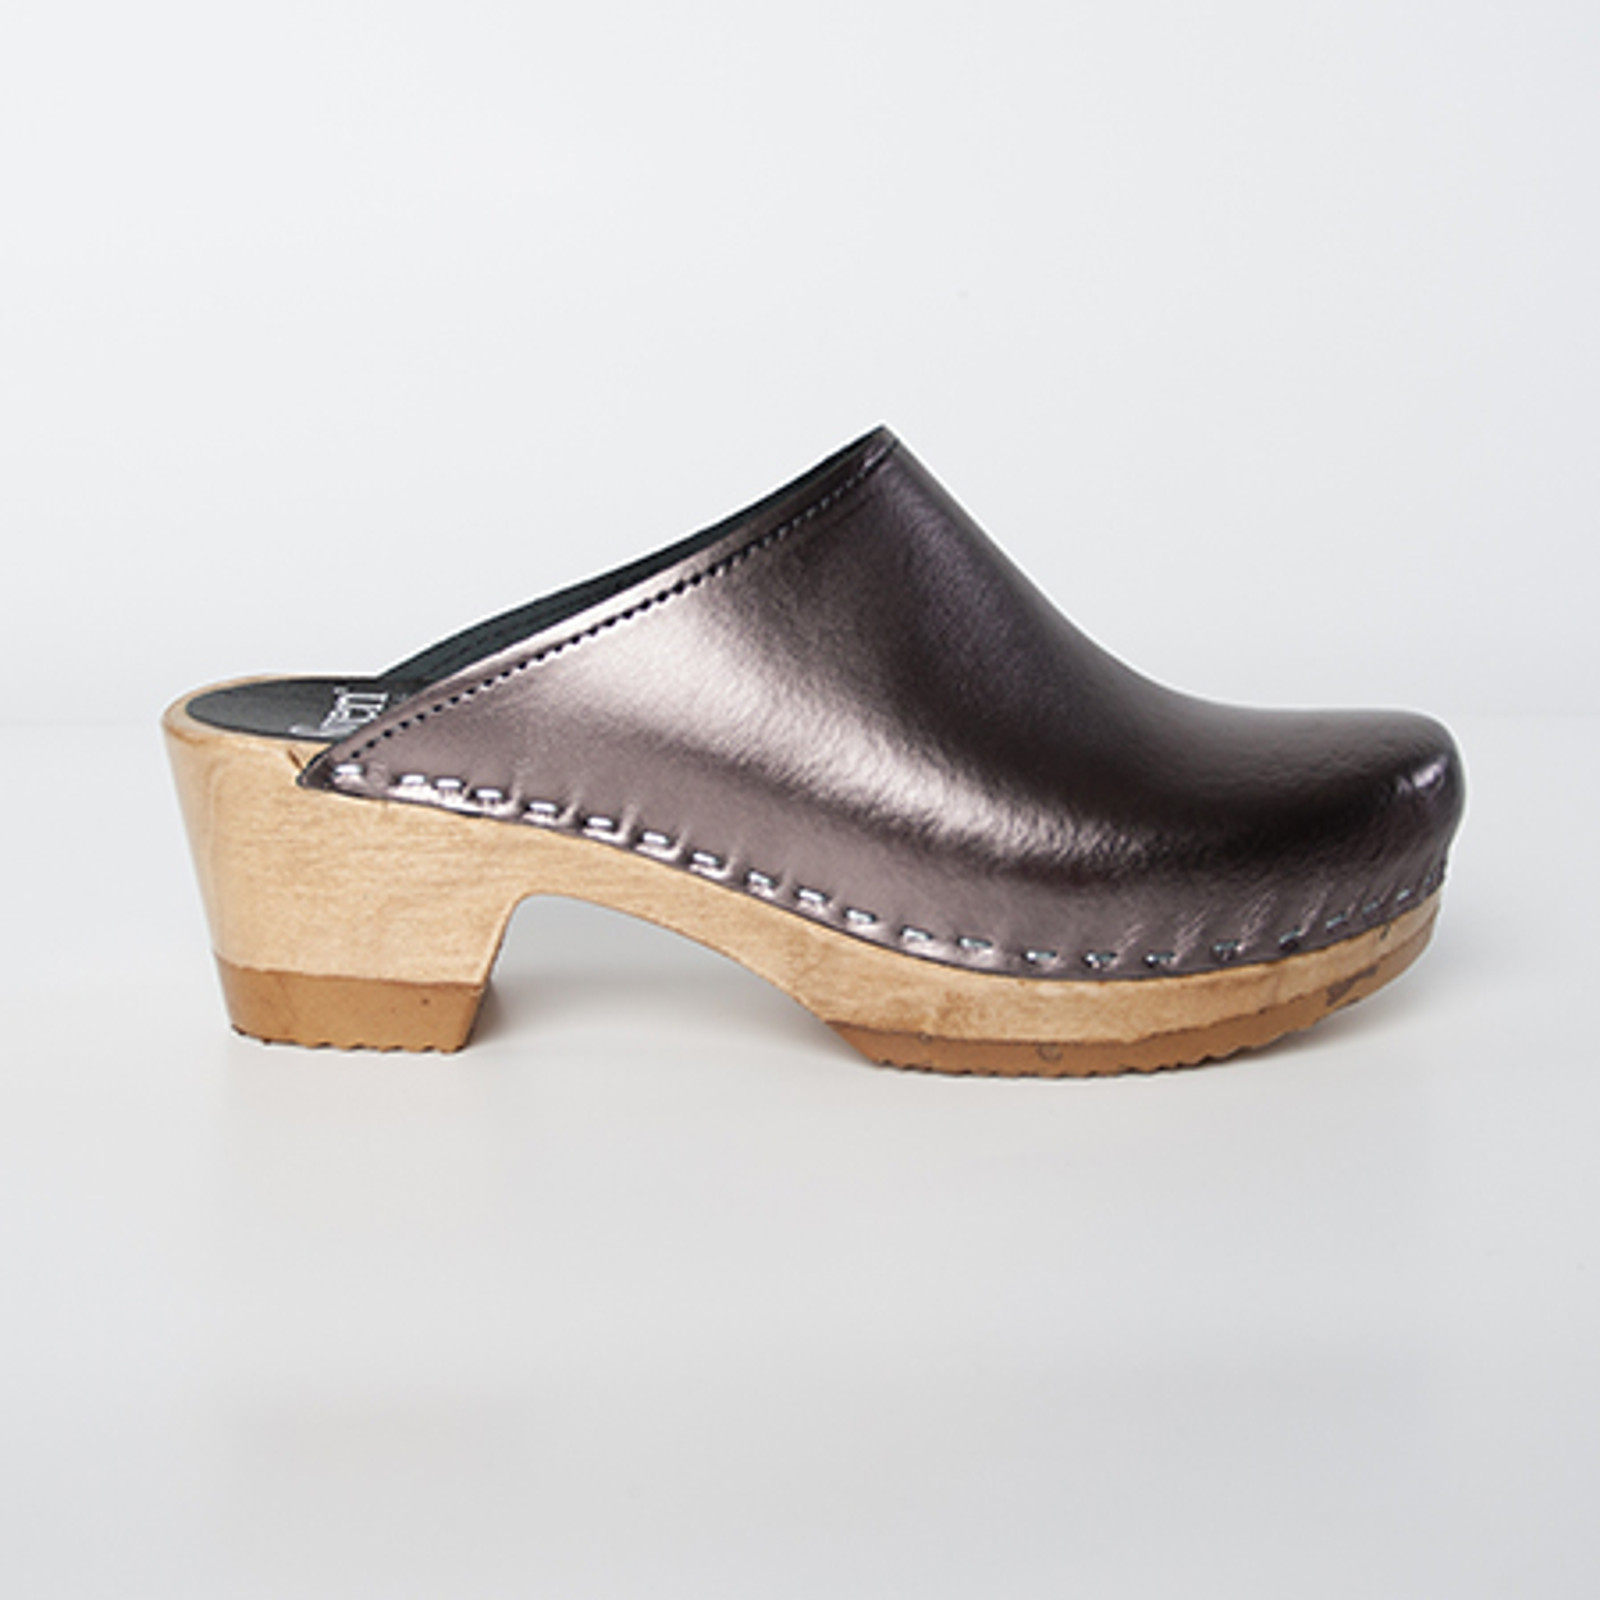 Pewter Metallic Leather with Brown Base